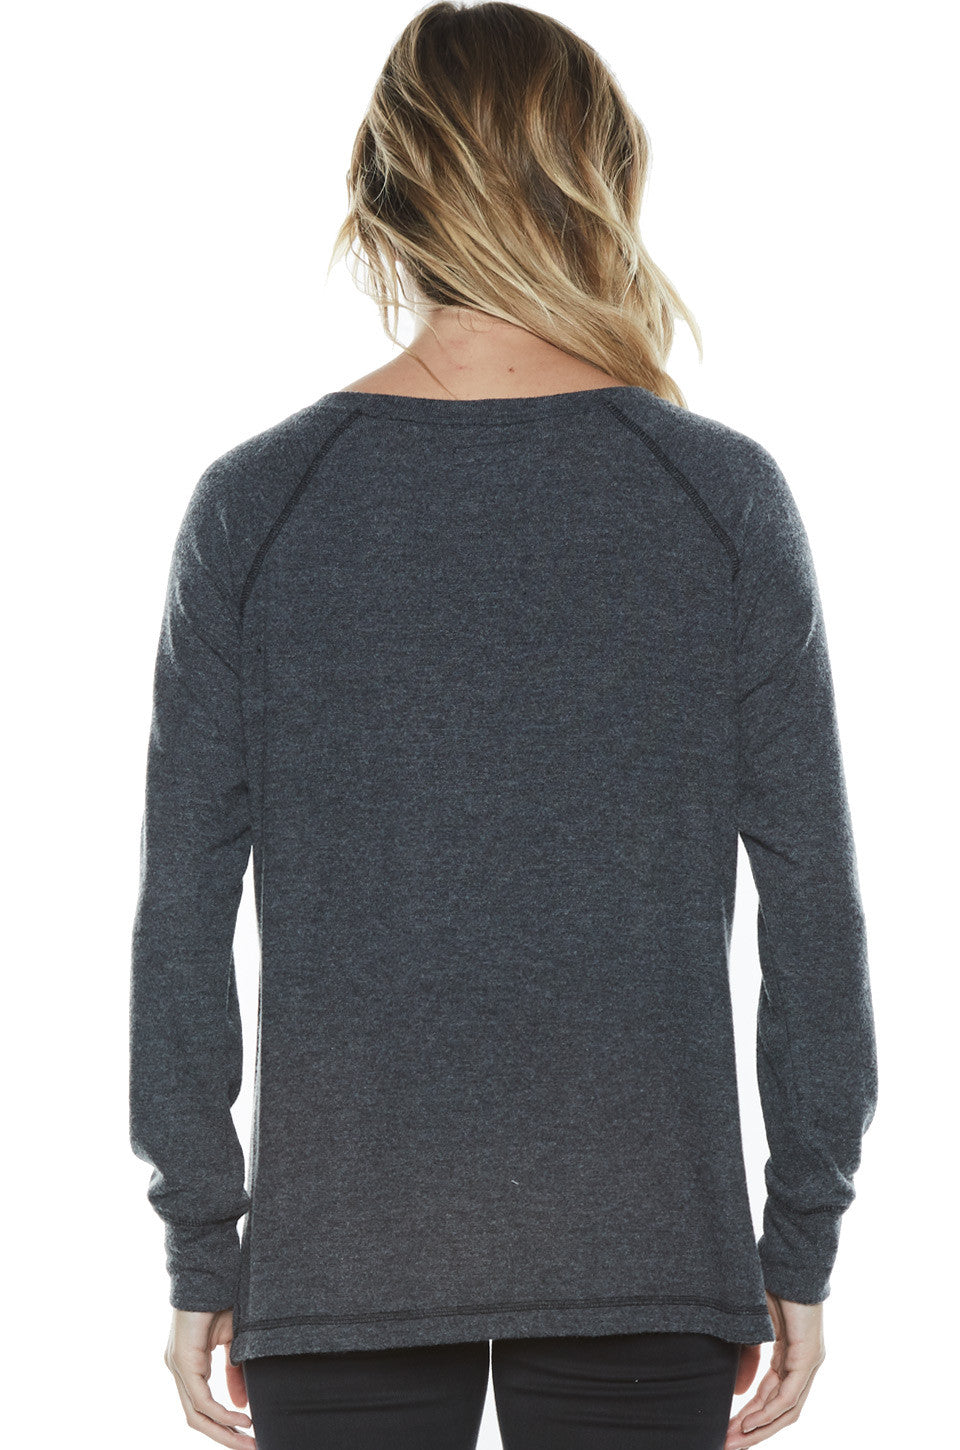 Amor Fashion Kills L/S Pullover Sweater w/Slit - Lauren Moshi - 4